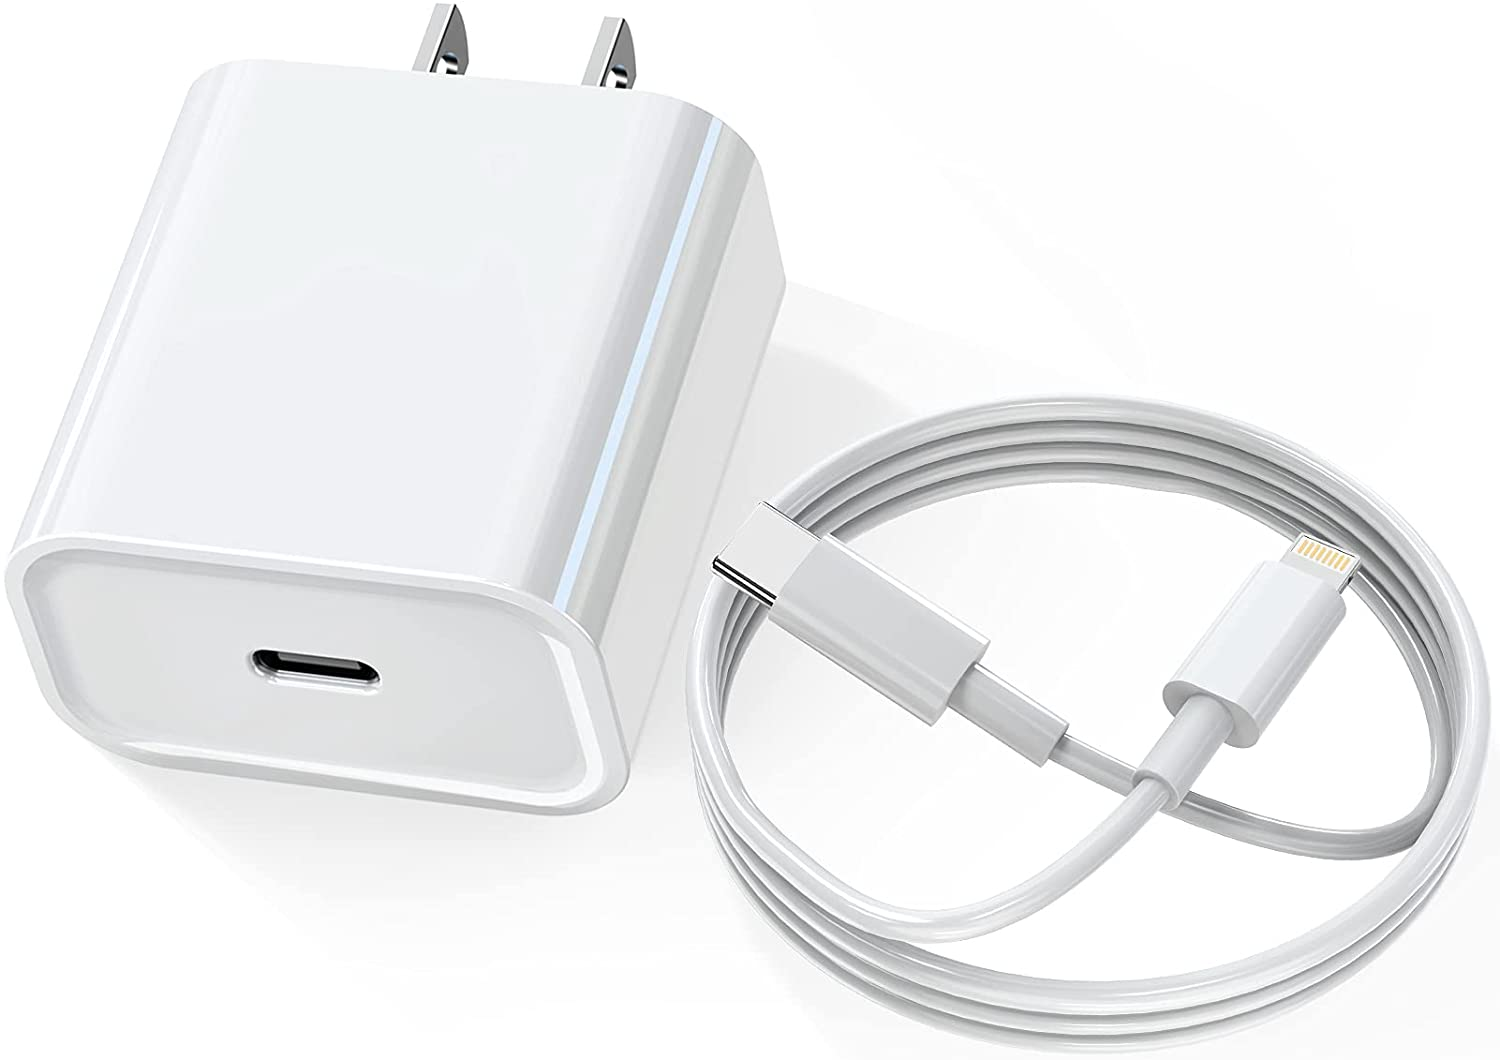 Save 60% on iPhone 12 Charger, USB C Wall Charger Fast Charging.